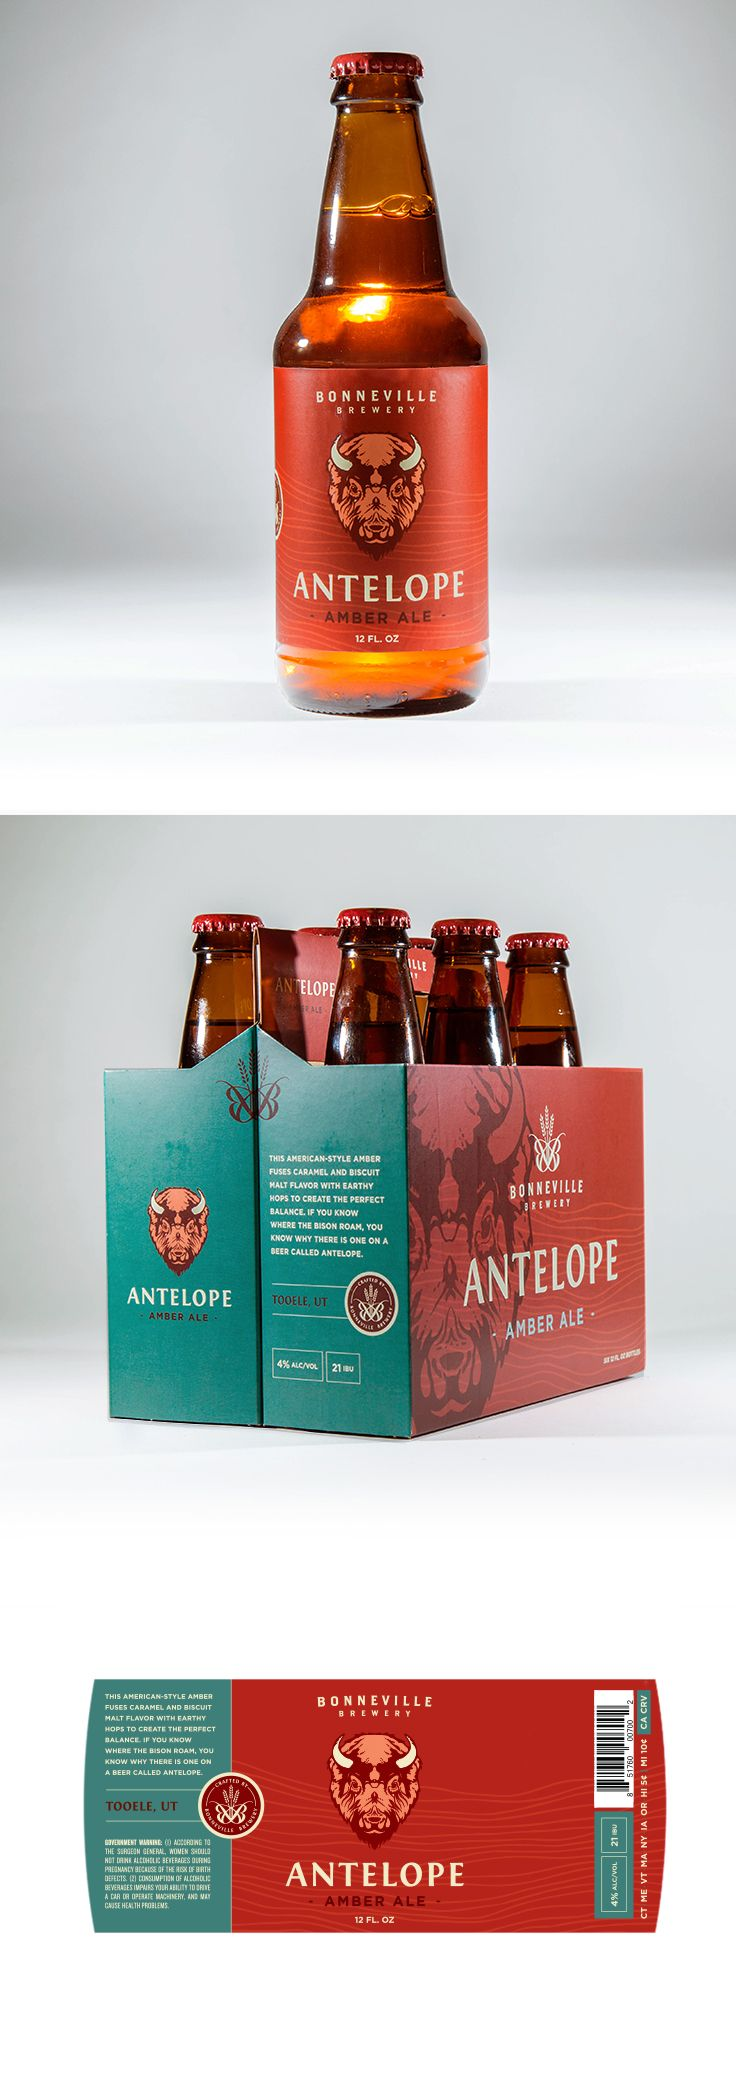 Antelope Ale Box and Label design by Epic Marketing for Bonneville Brewery. #packagingdesing #graphicdesing #labeldesign #beer #beerlabel